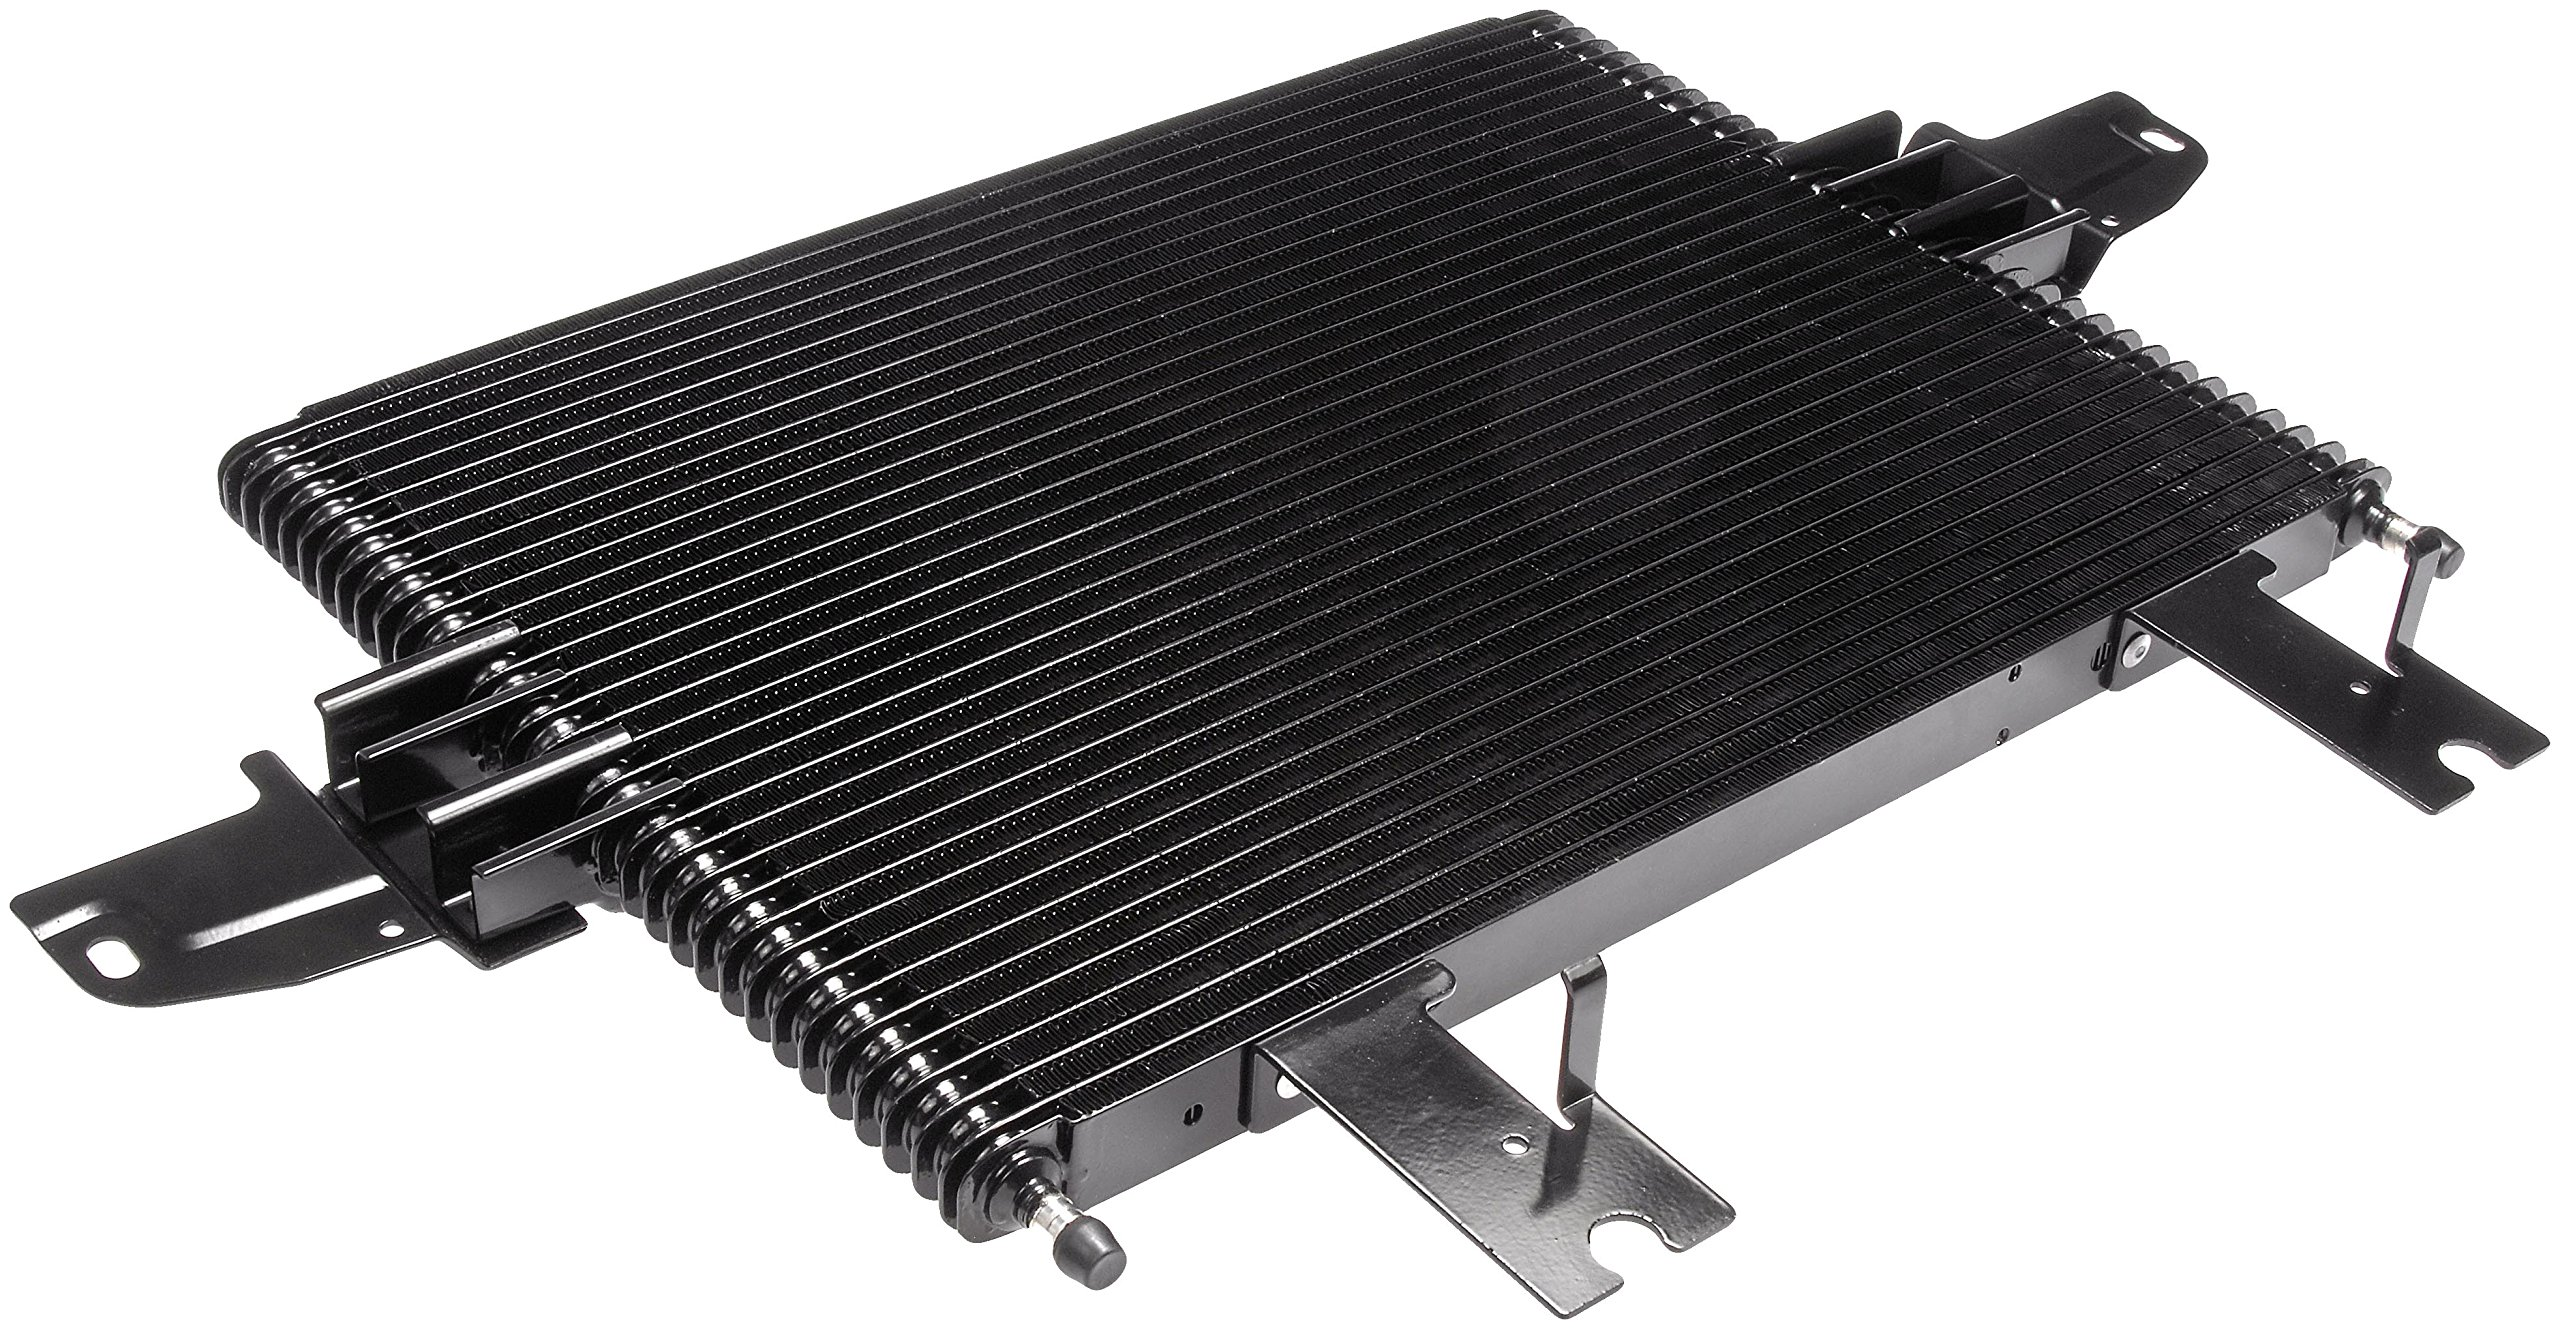 Dorman 918-216 Transmission Oil Cooler by Dorman